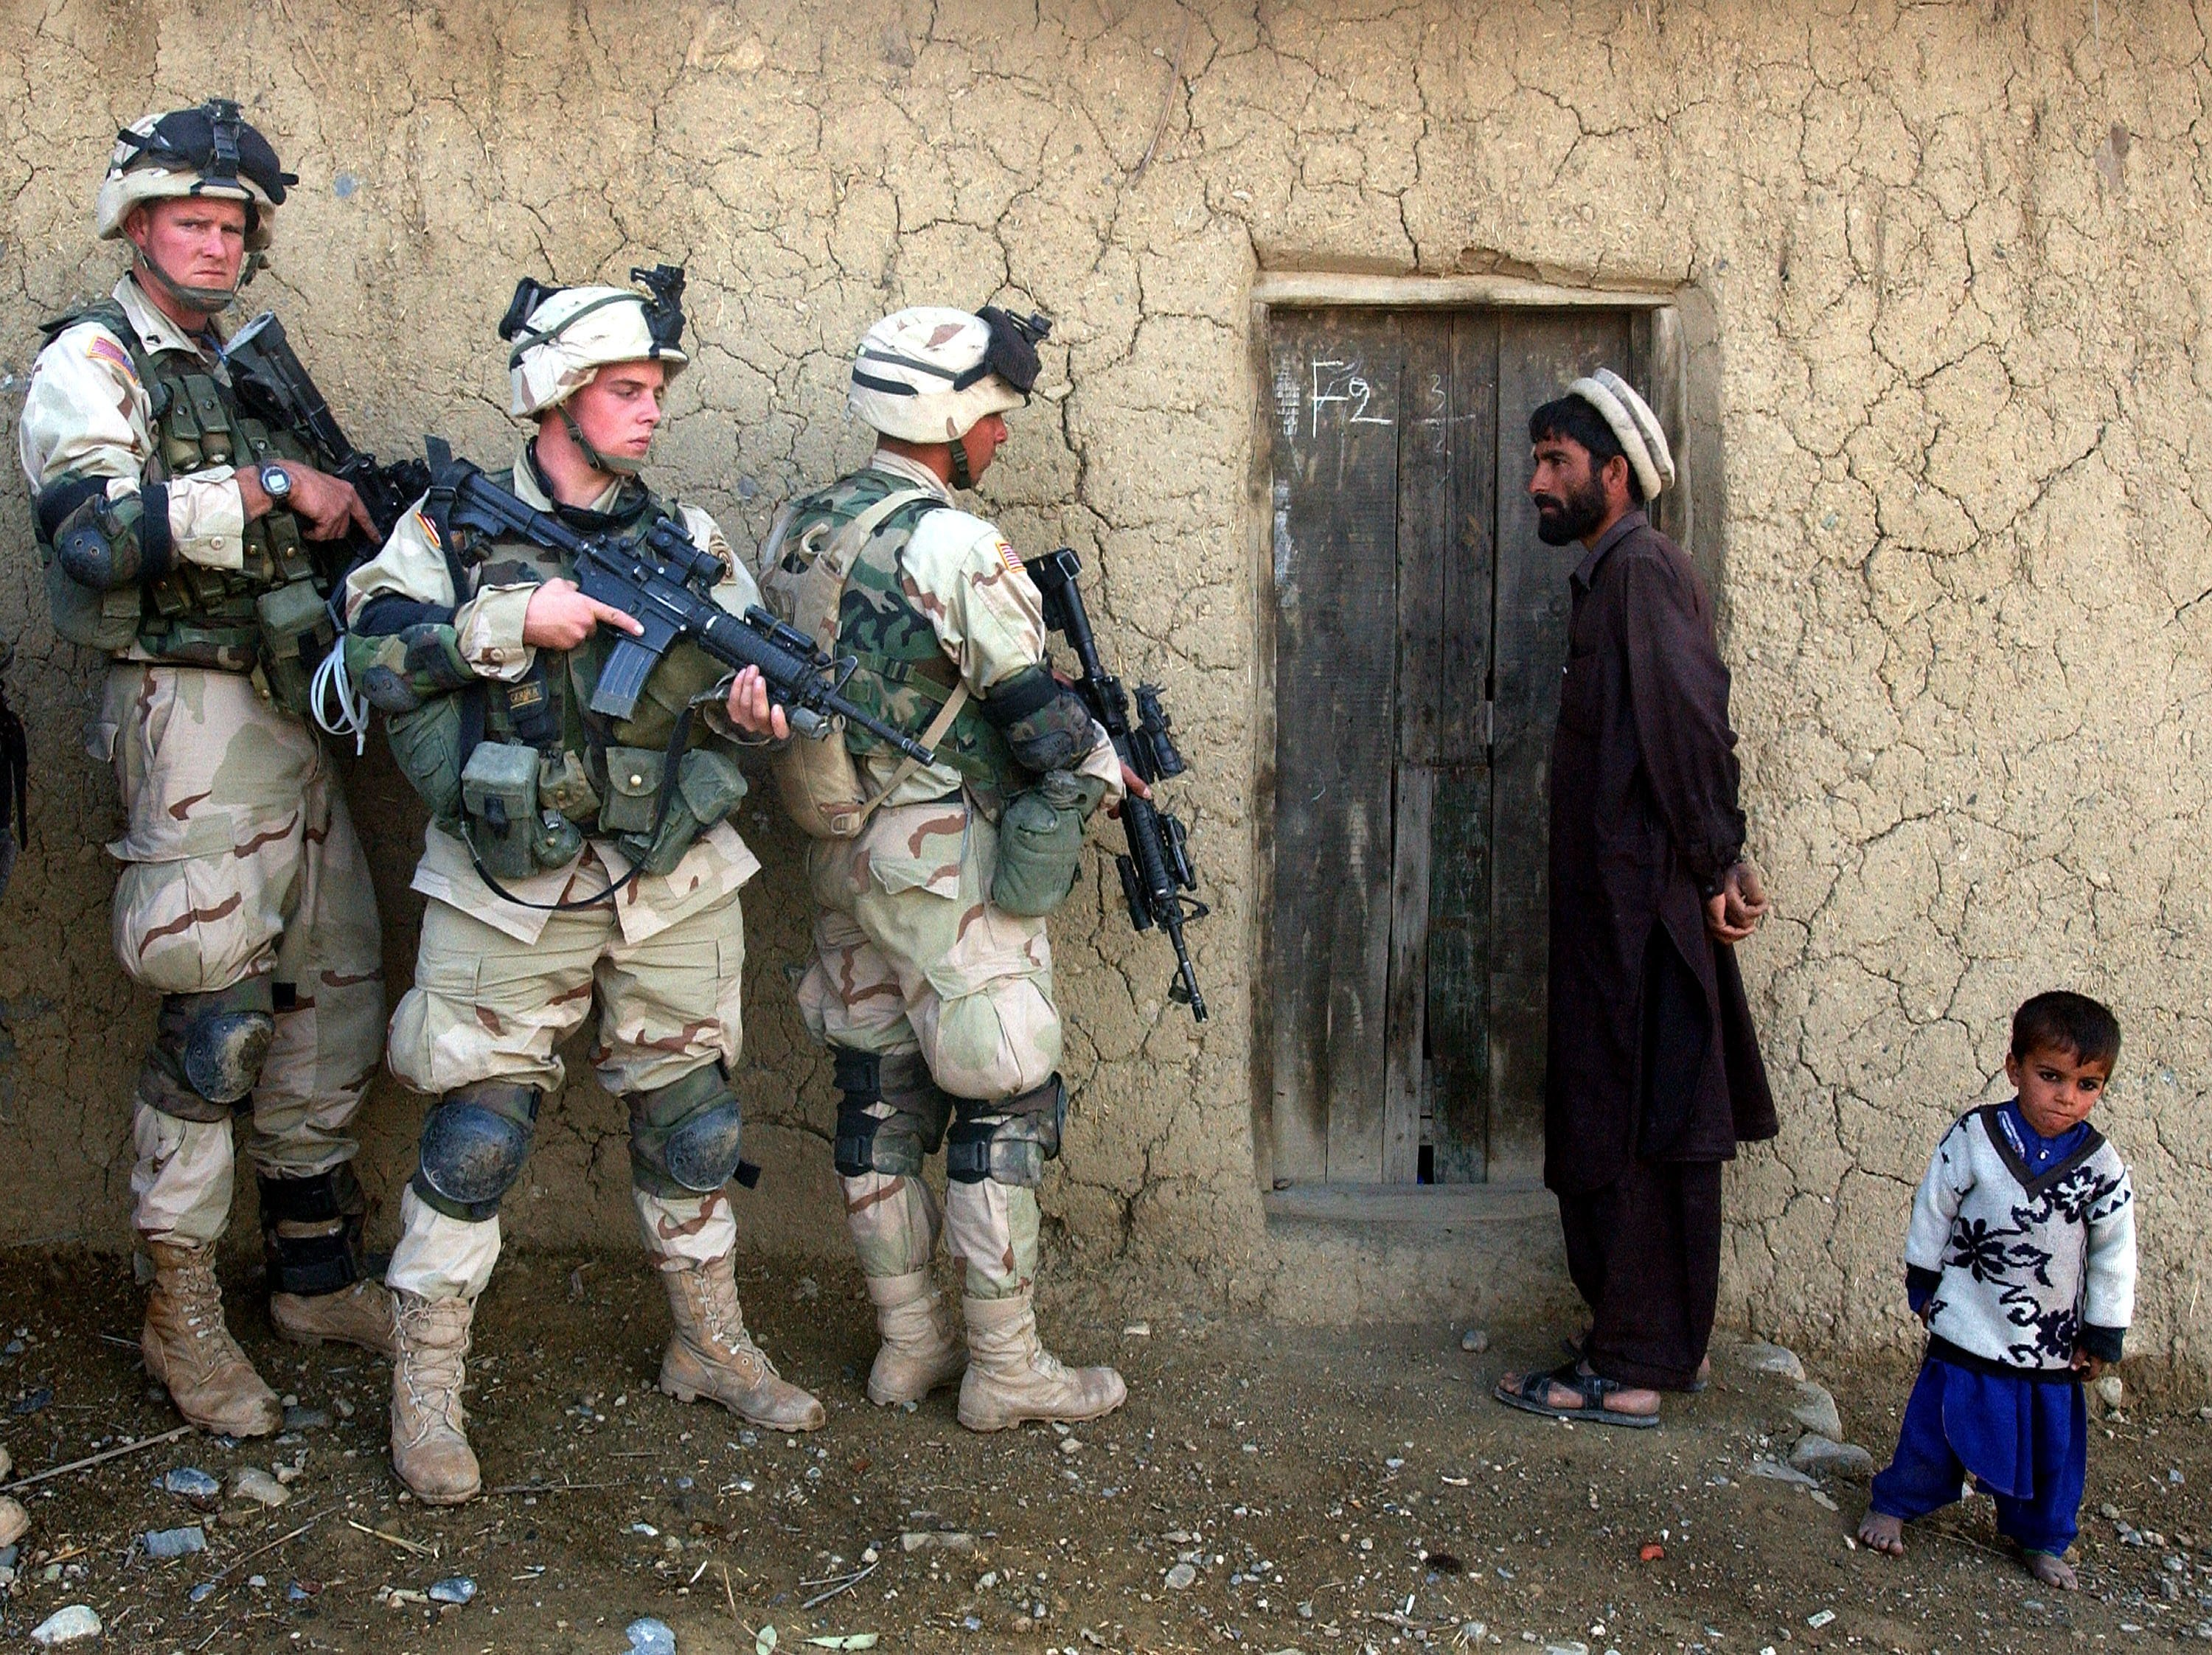 An Afghan man and his son watch as soldiers from the U.S. Army 82nd Airborne Division prepare to sweep their home in southeastern Afghanistan, Nov. 7, 2002. (Getty Images)